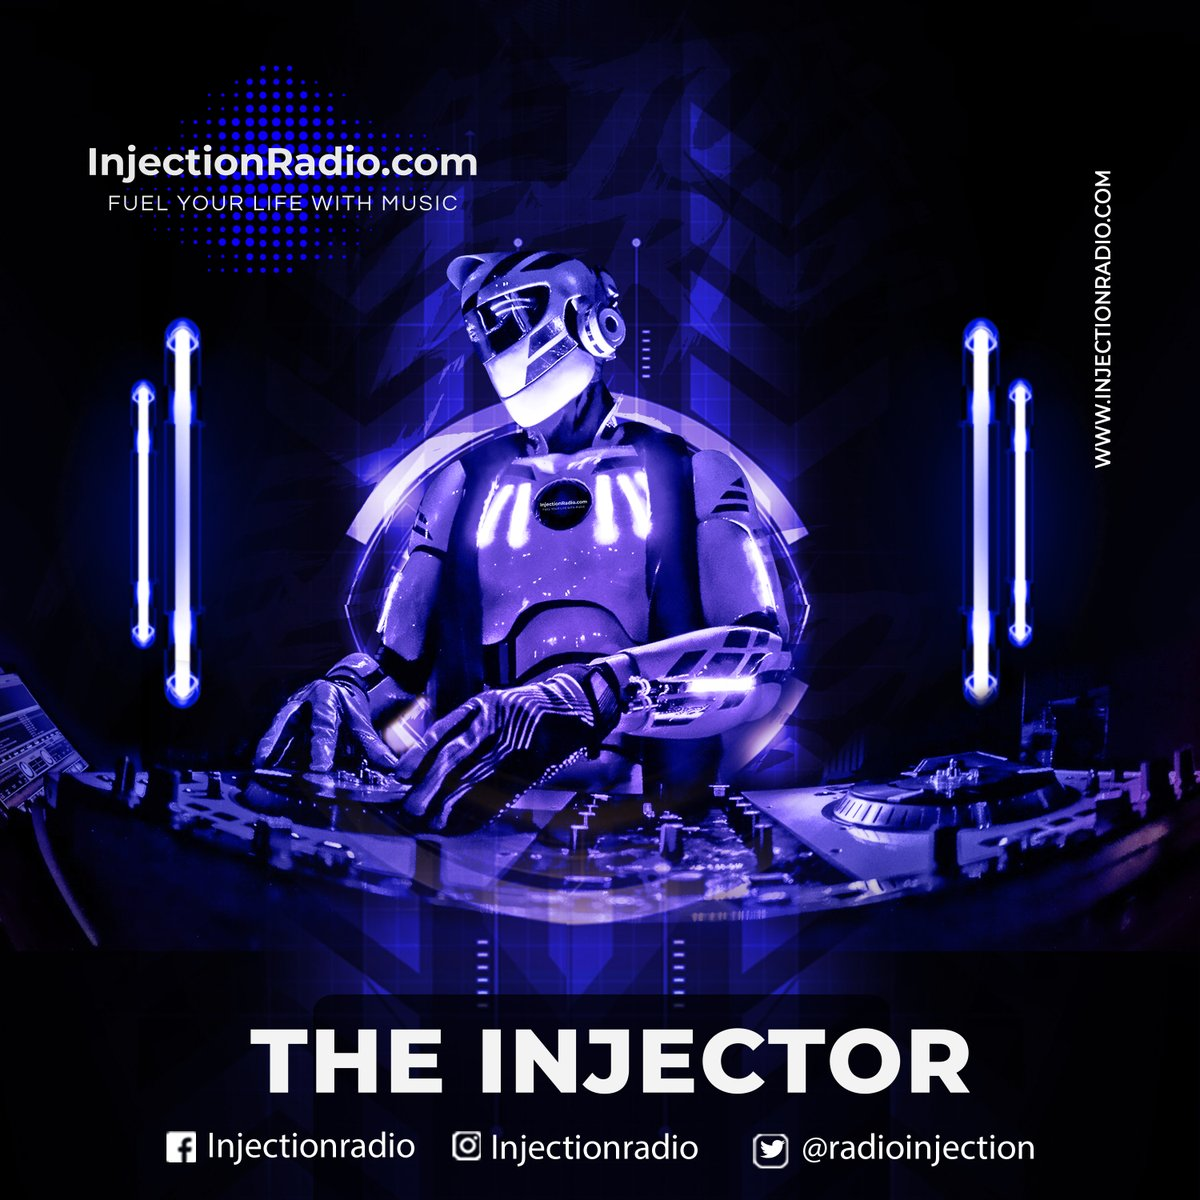 Remember! We currently have no Live DJ's during the day! But THE INJECTOR is here to keep you partying strong! Tune in now at http://www.injectionradio.com #party #partyatwork #partytime #grabthespeaker #liveradio #robotpic.twitter.com/OiAon4mNEu